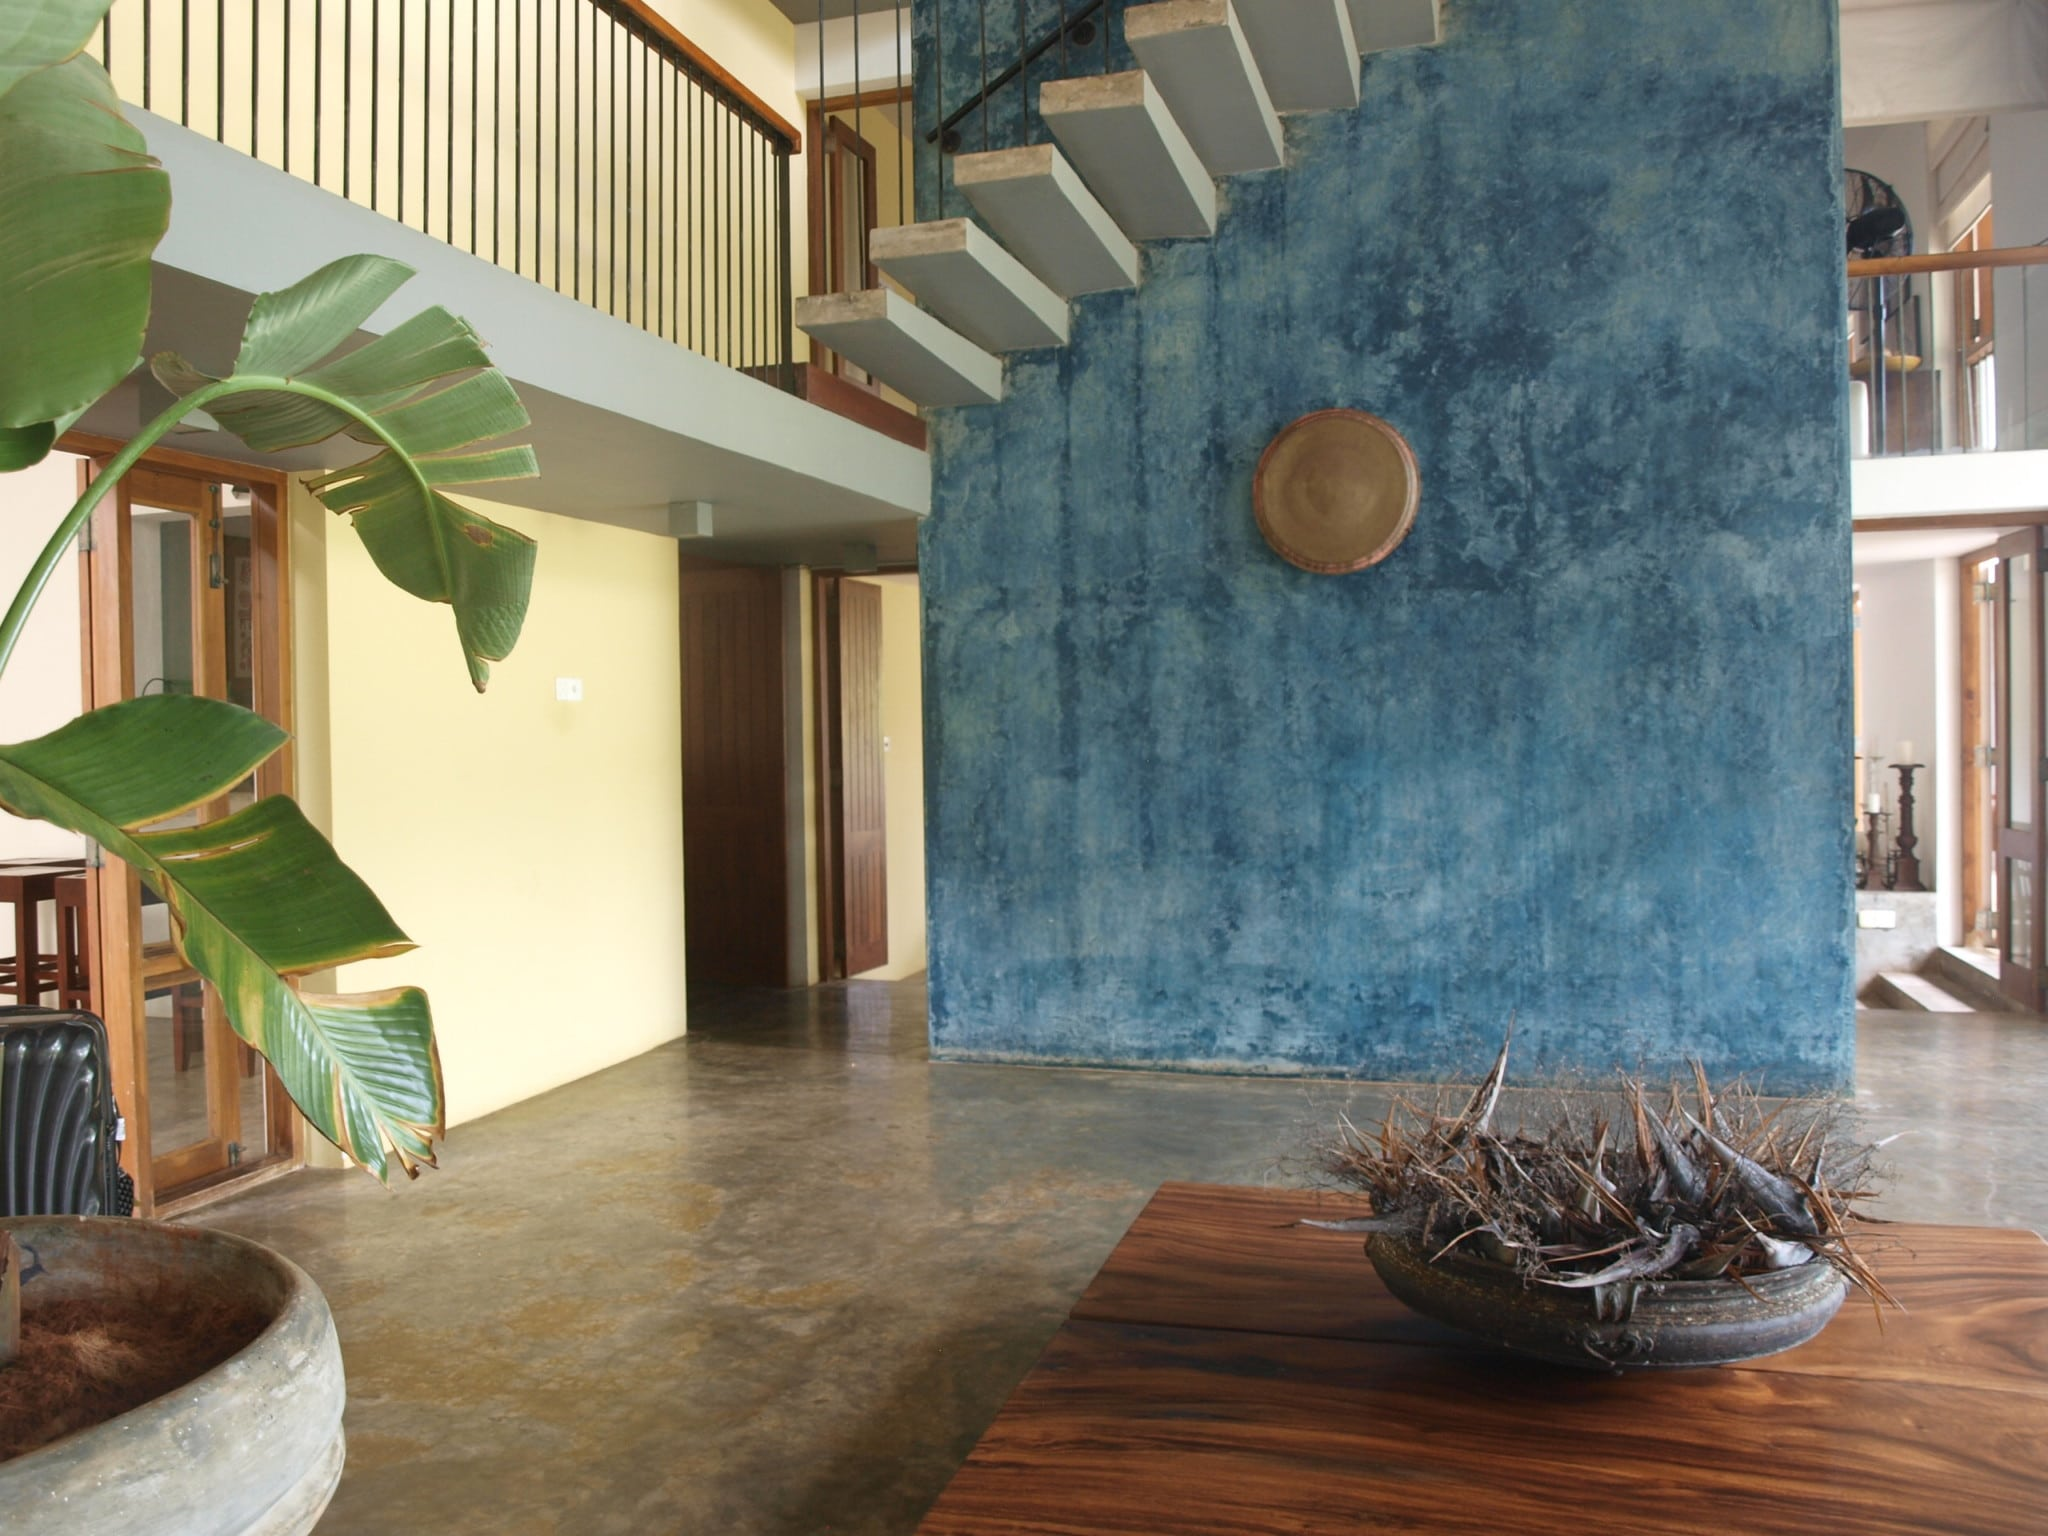 Saffron & Blue luxury beachside villa kosgoda Sri Lanka